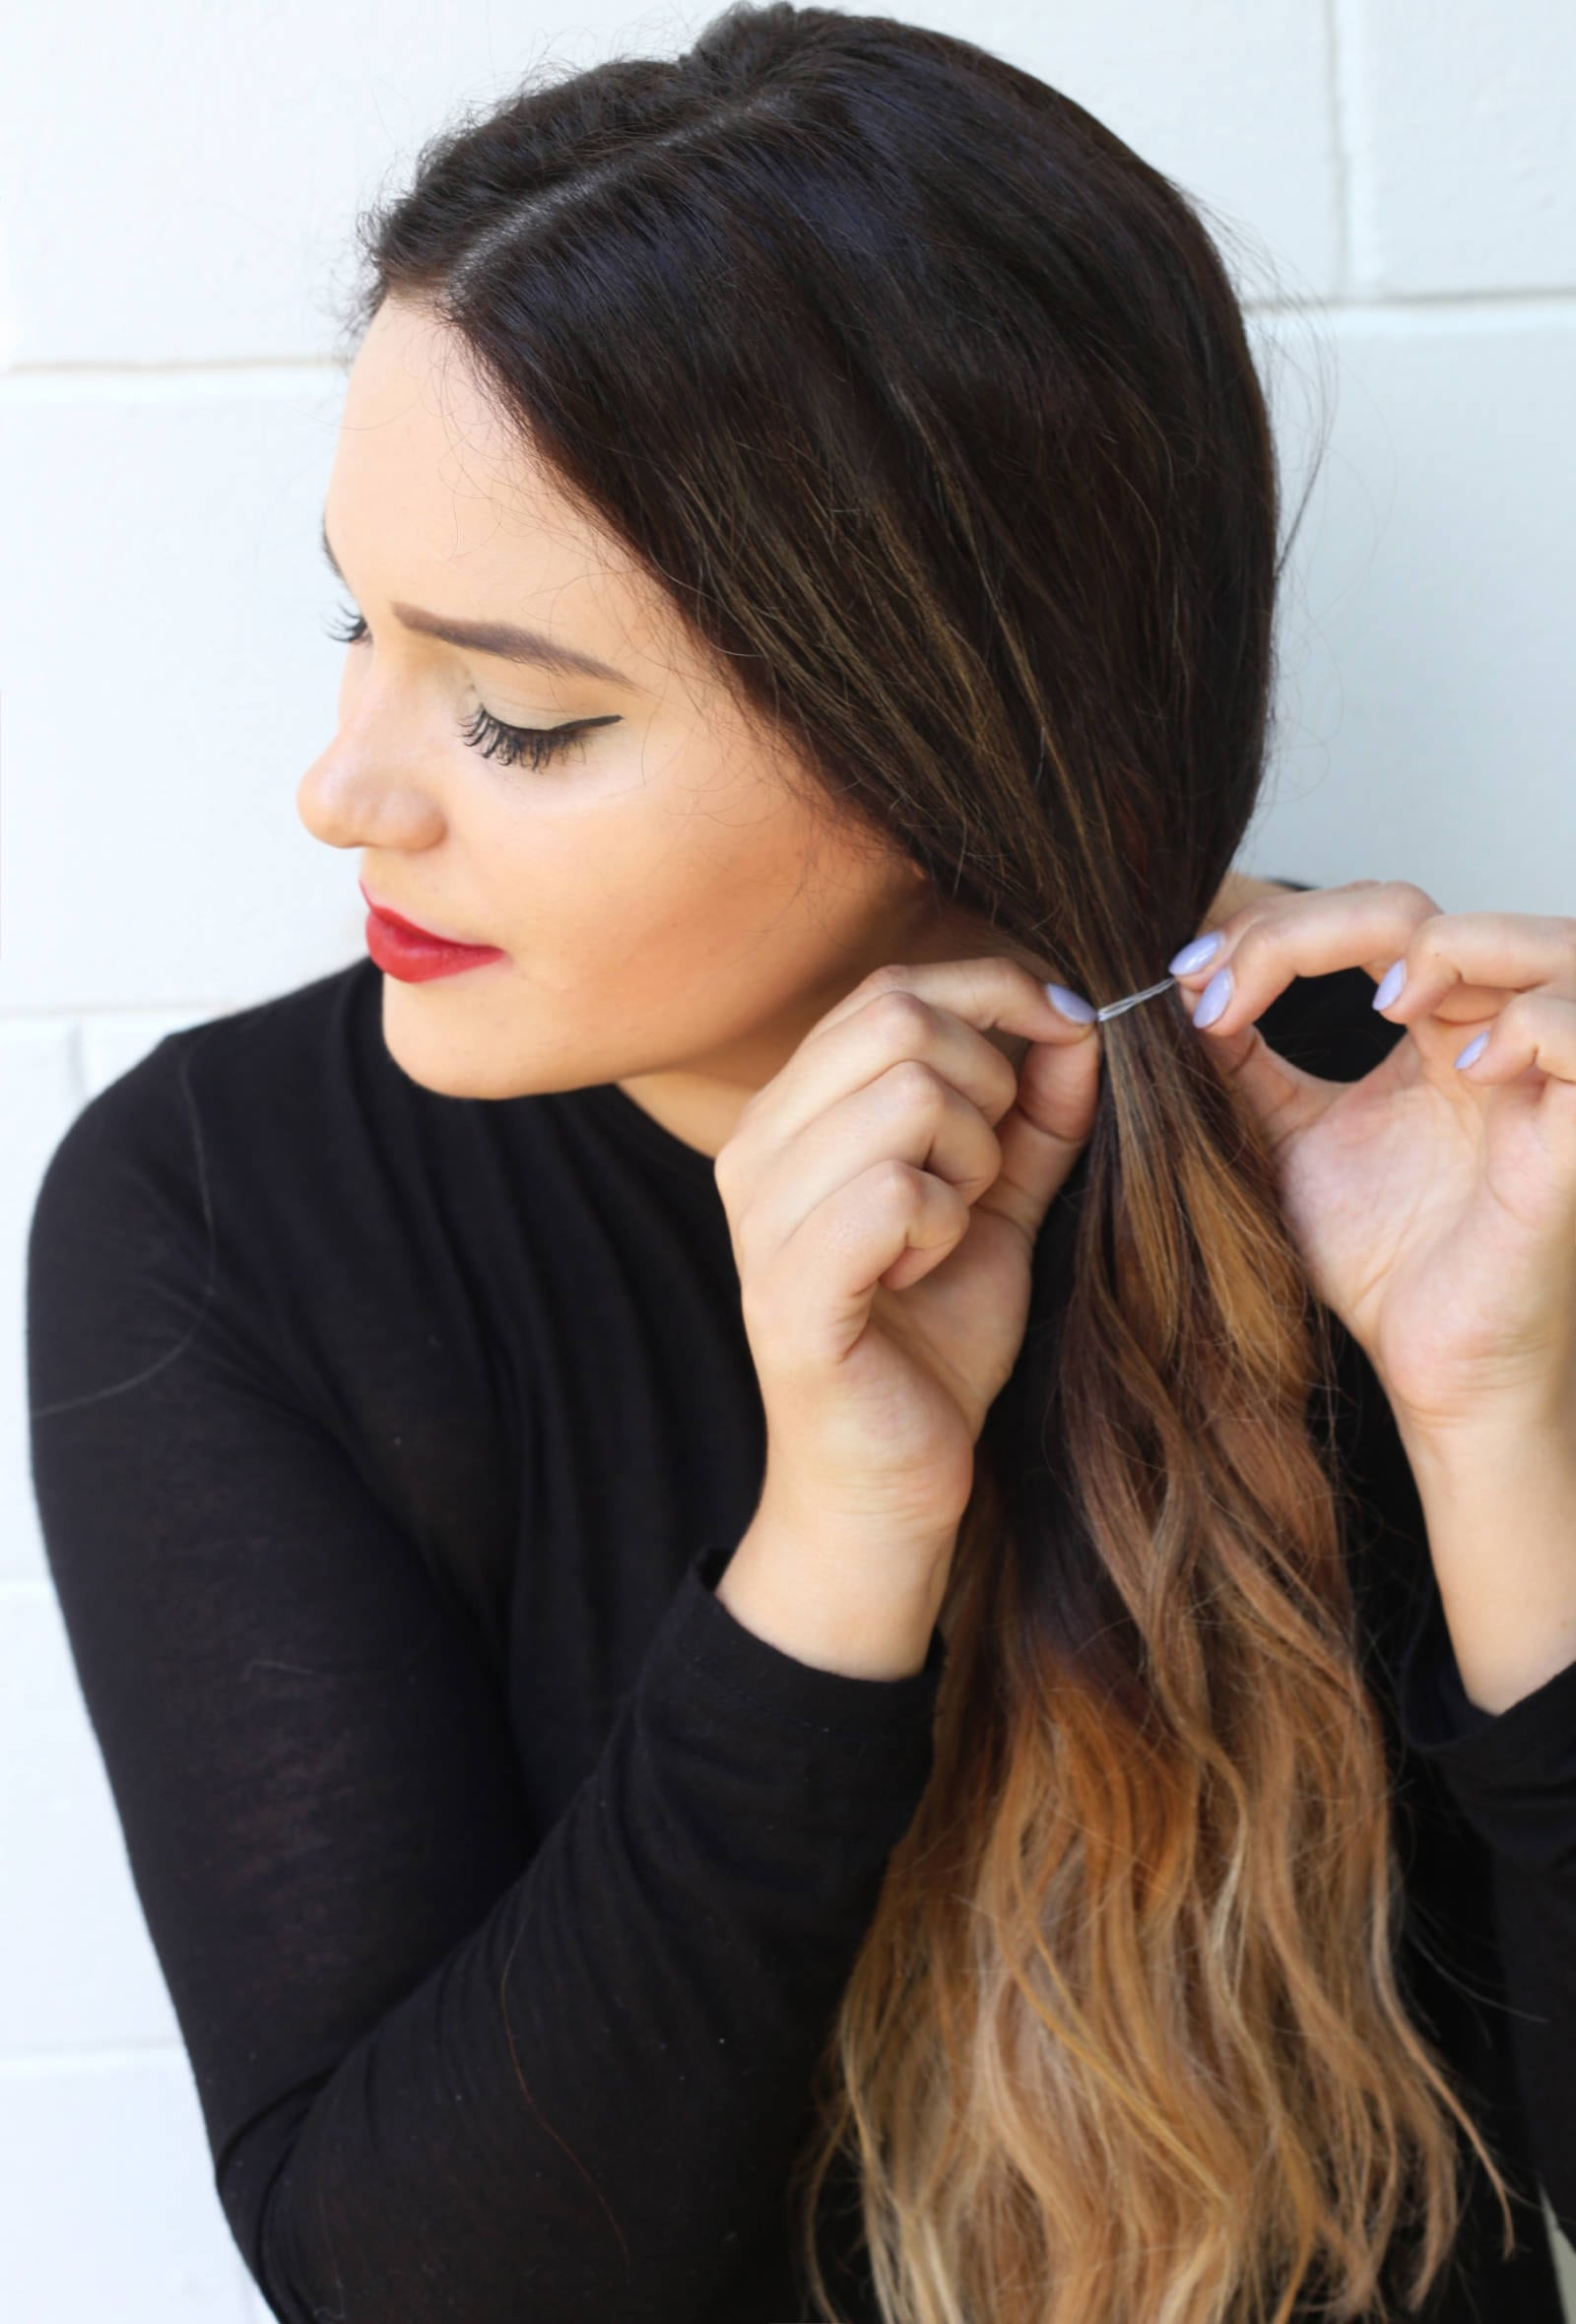 Fashion and beauty blogger Mash Elle shares how to wear a multi-use choker